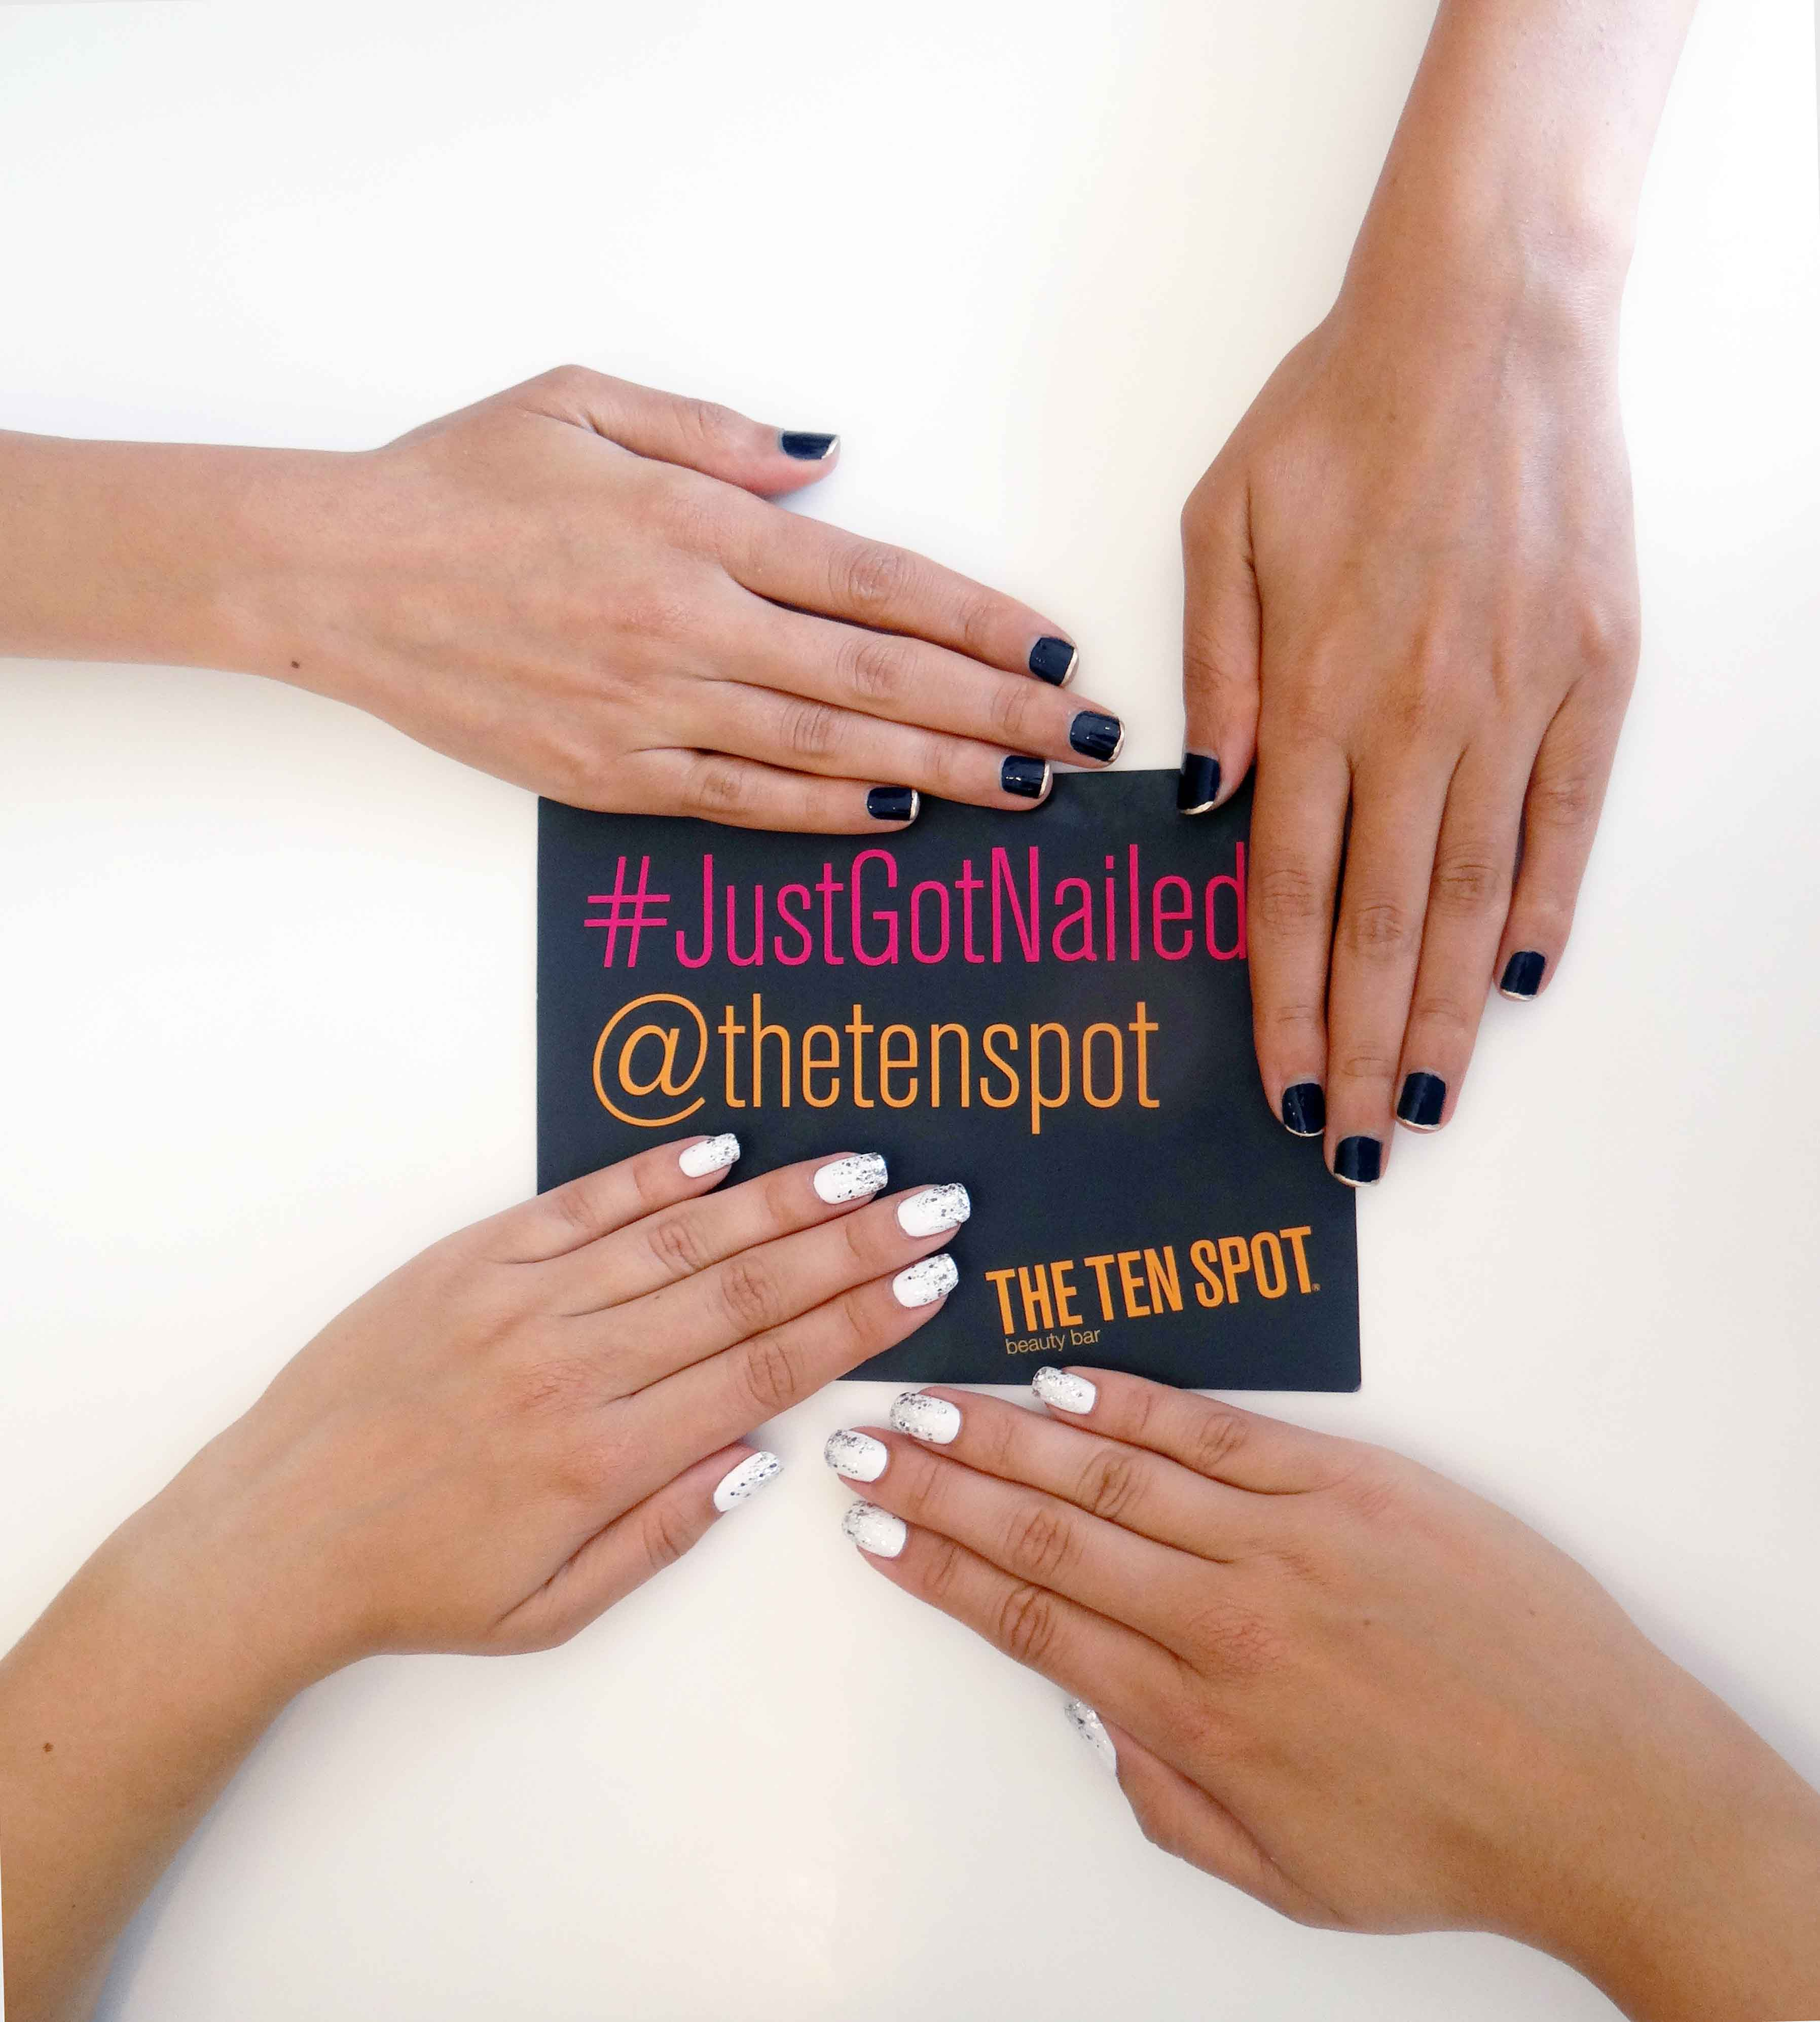 Nails, Nail Art, Beauty, Essie, Nail Polish, Manicure, Toronto Spas, Whree to get a manicure toronto, Forest Hill, The Ten Spot,